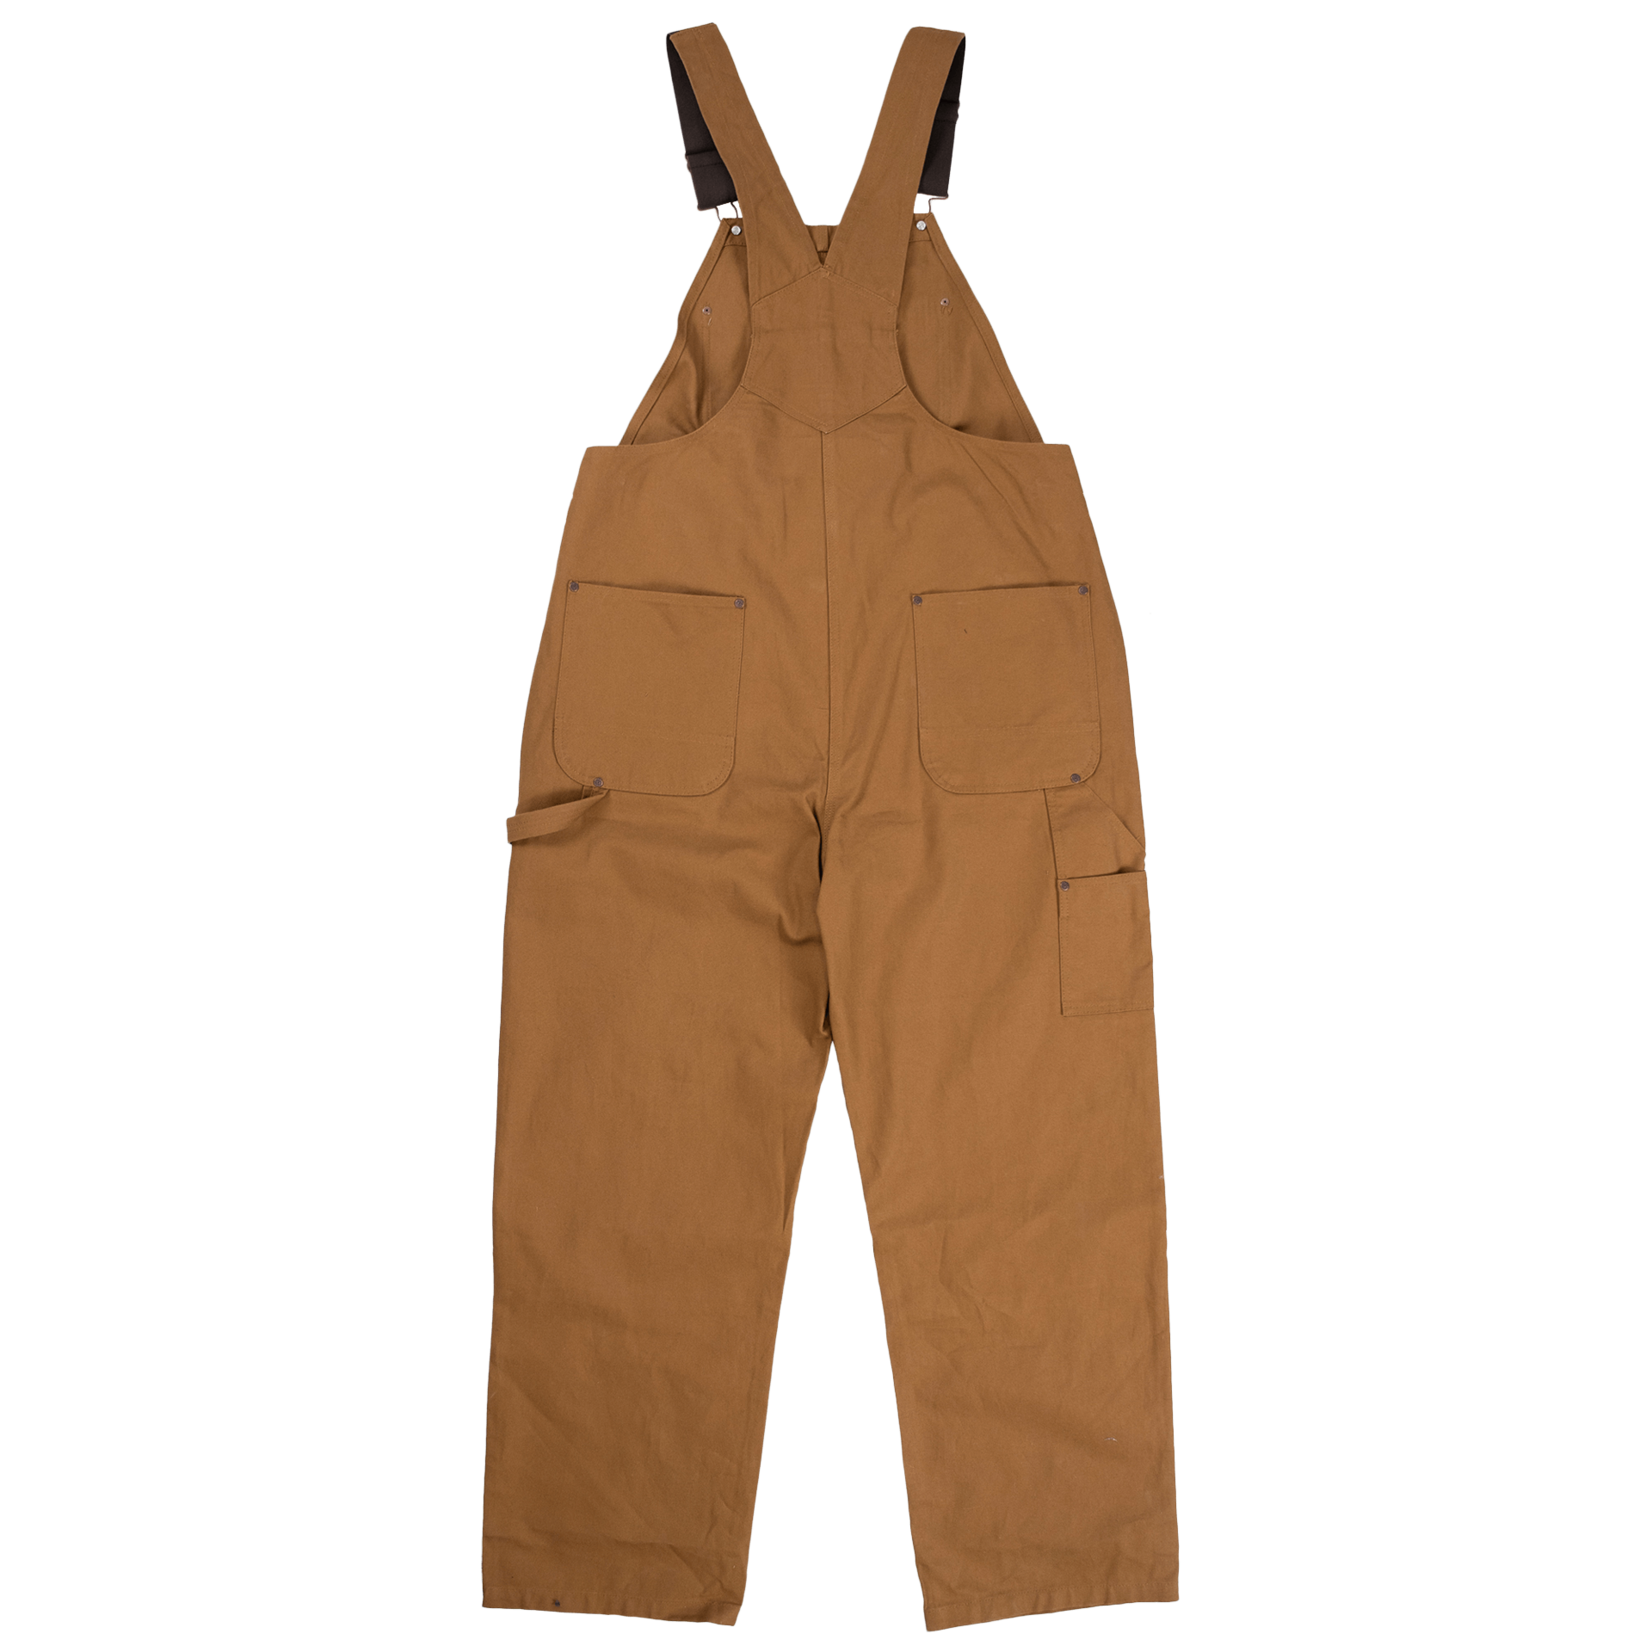 Tough Duck Tough Duck Unlined Bib Canvas Brown Overall i198